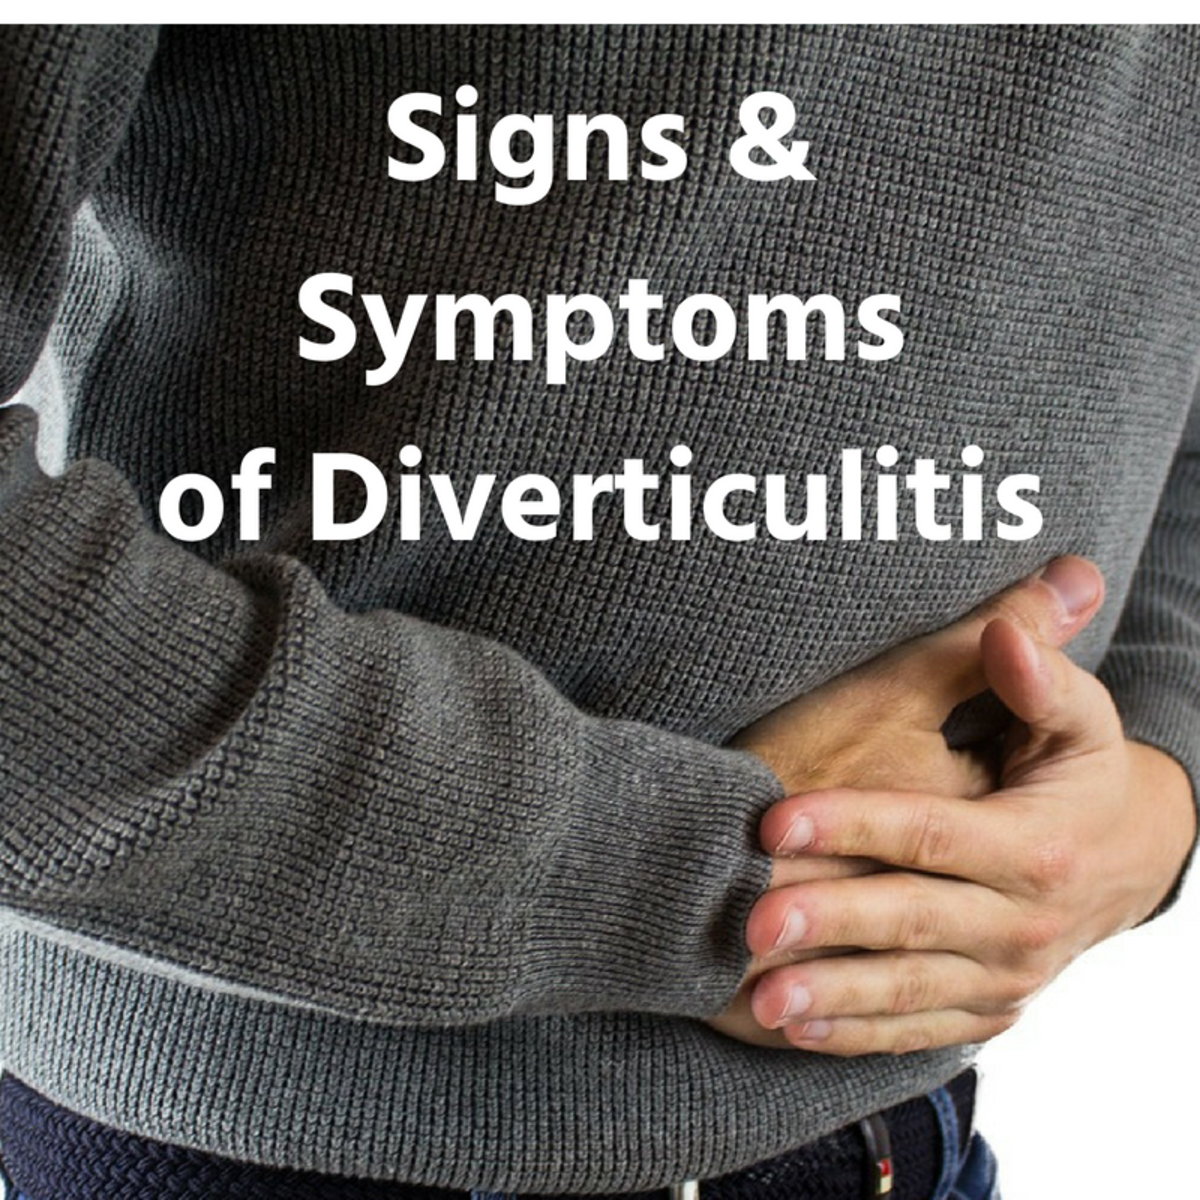 Diverticulitis can often be confused with other ailments.